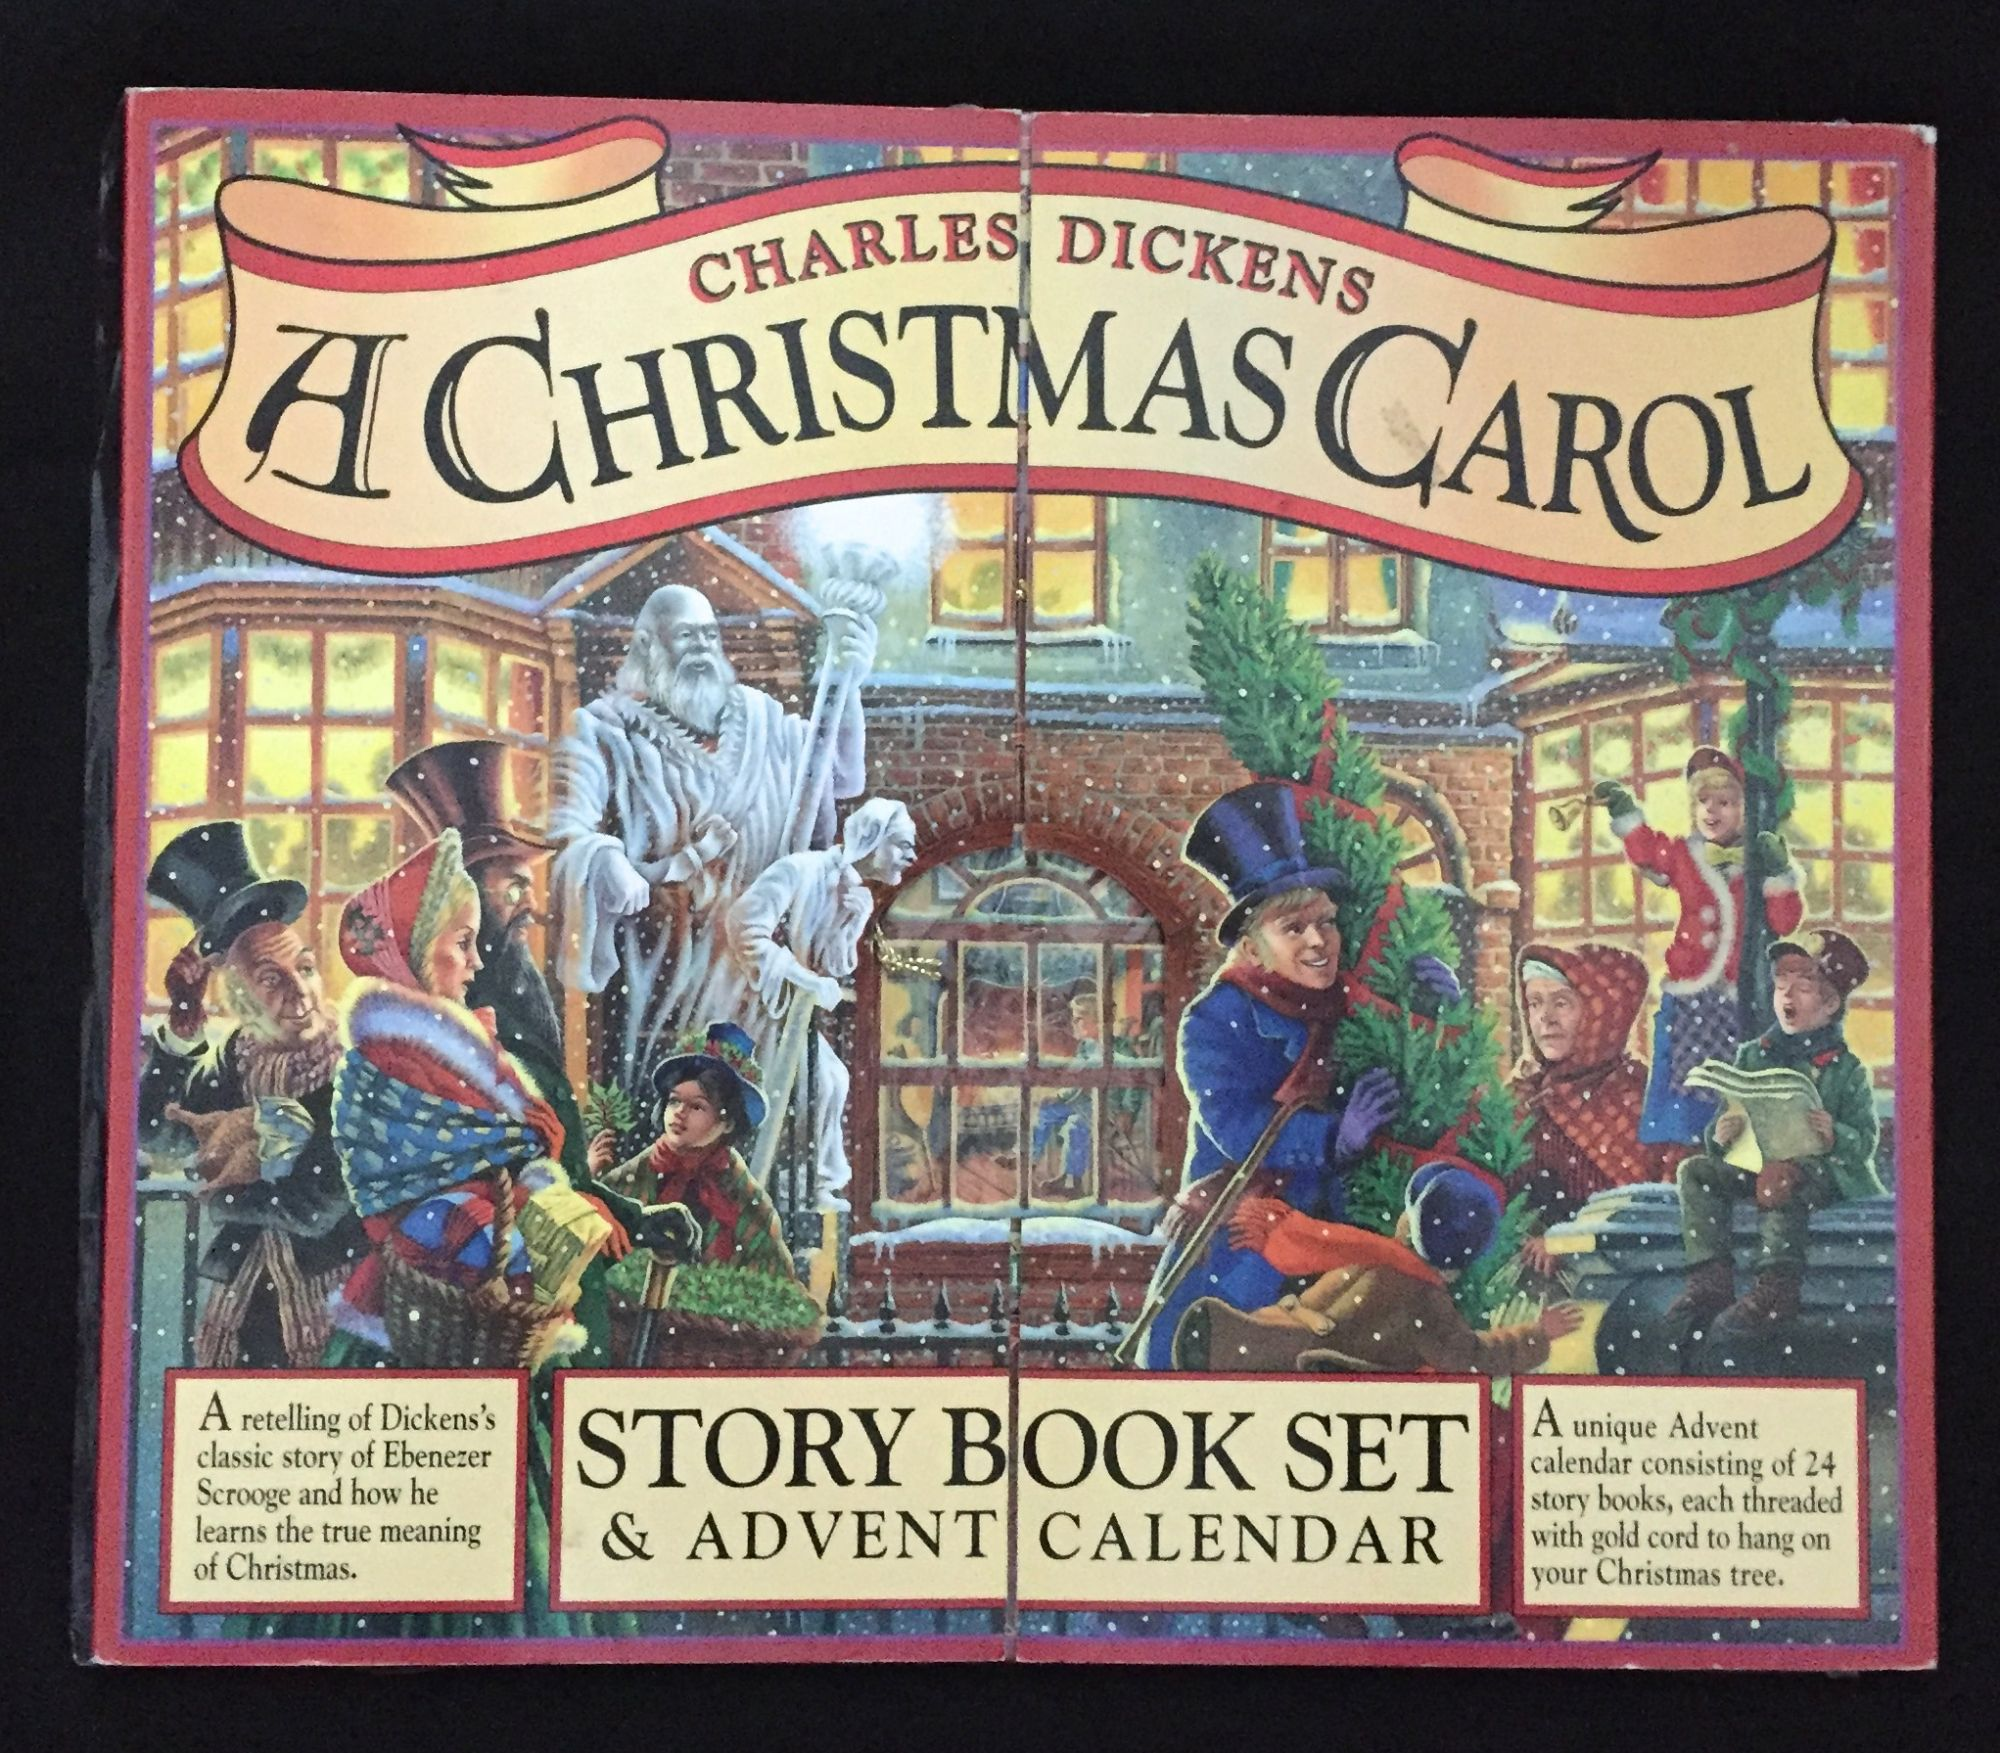 charles dickens a christmas carol story book set advent calendar retelling of dickenss classic story of ebenezer scrooge and how he learns the true